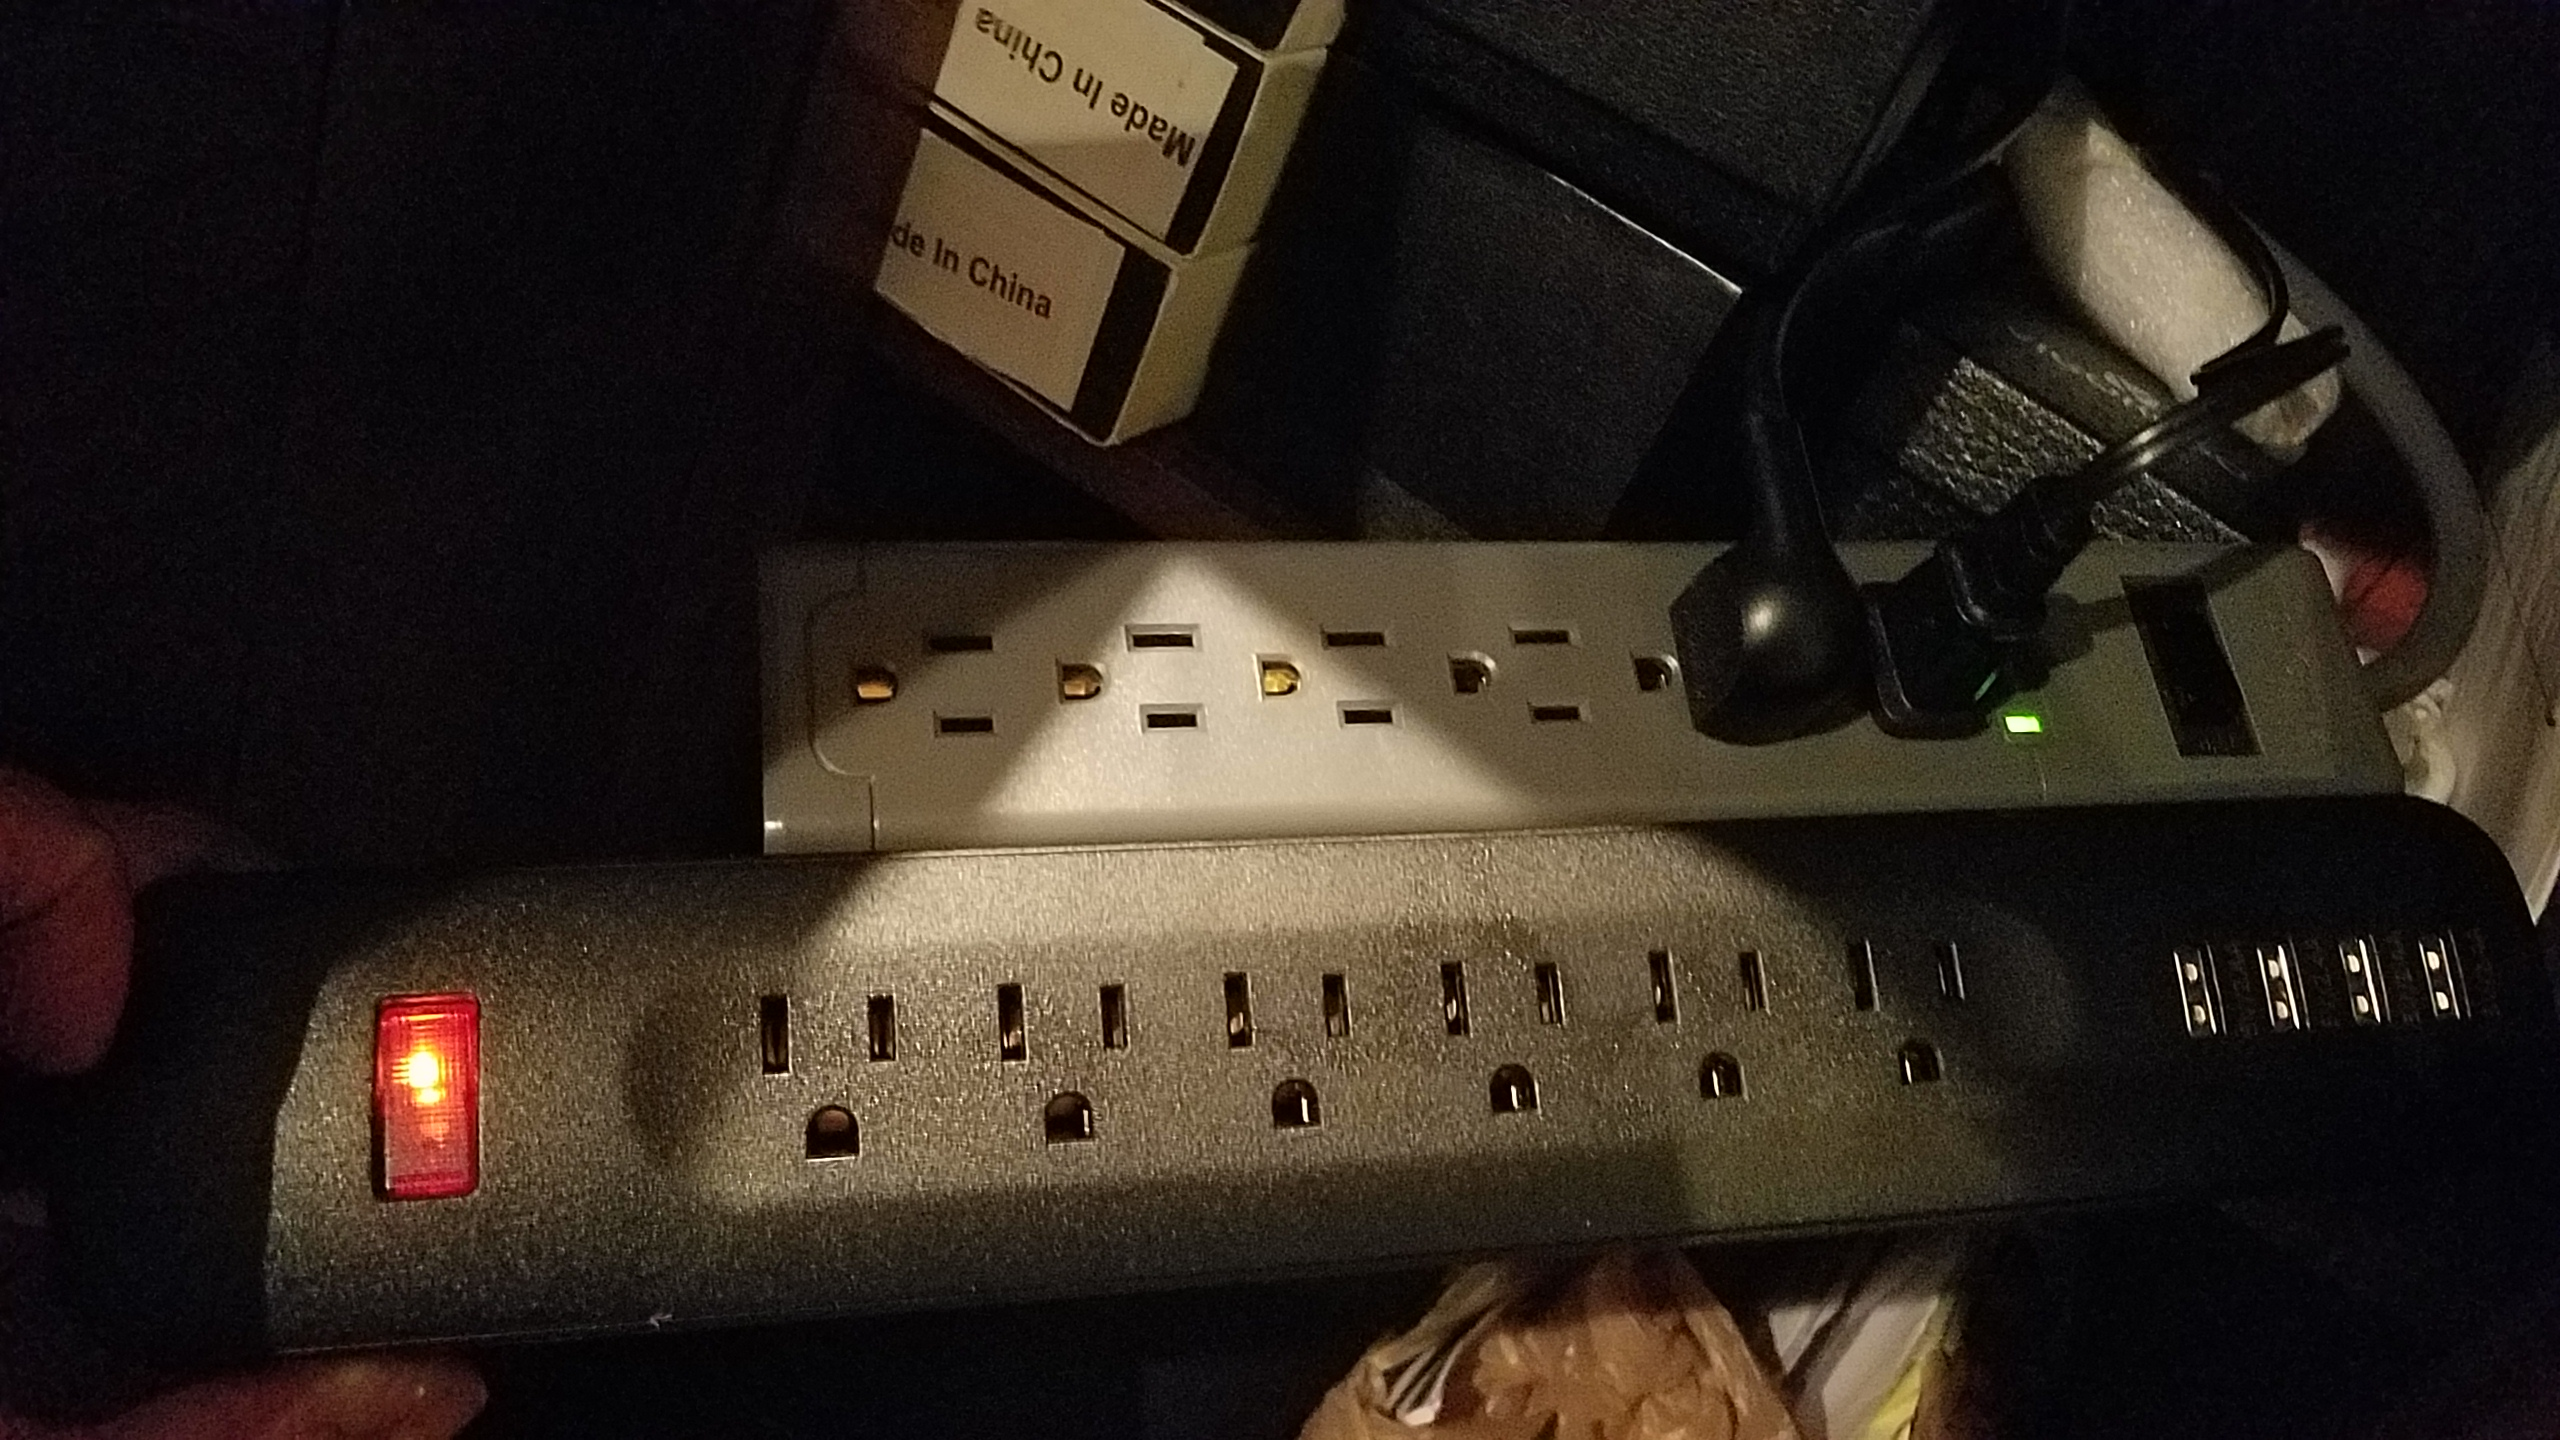 Got 6 outlets, but also 4 Ports for USB charging for just $2 more!